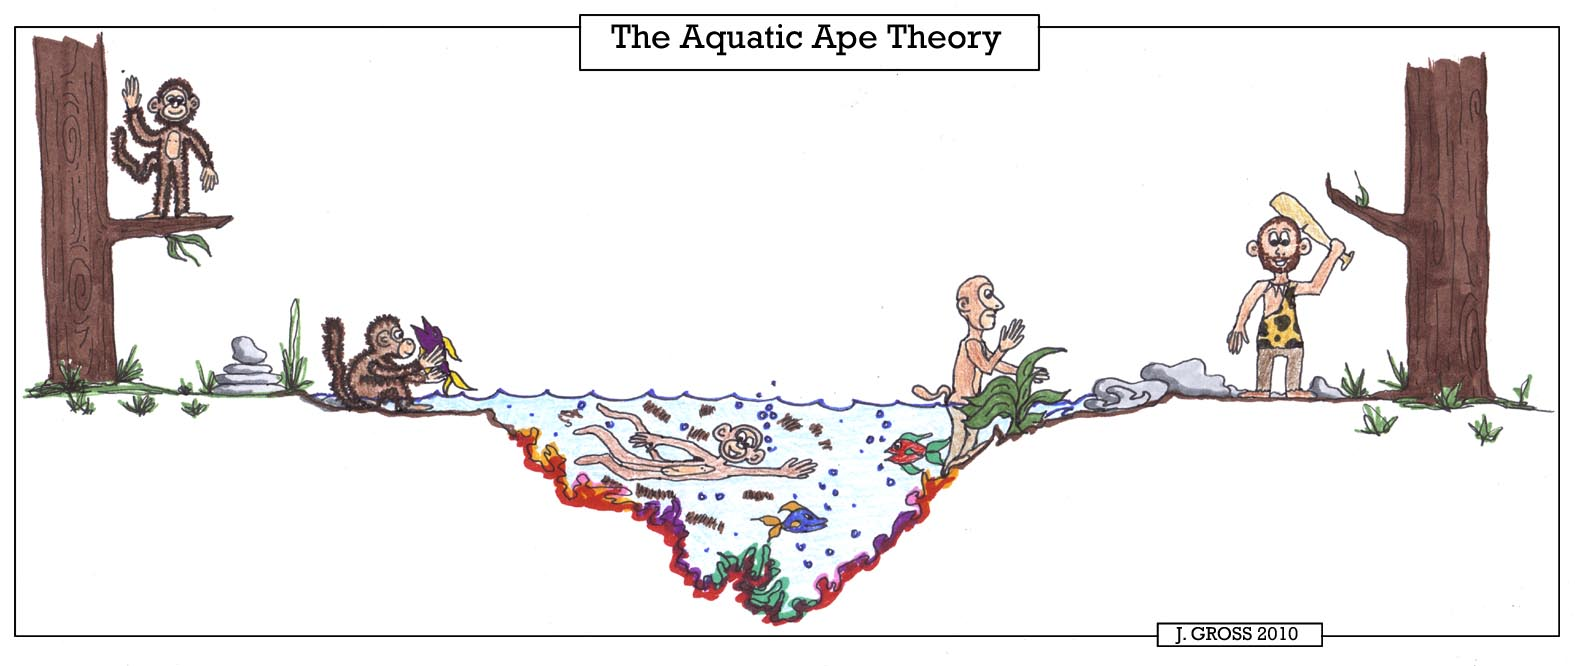 Aquatic-Ape-Theory